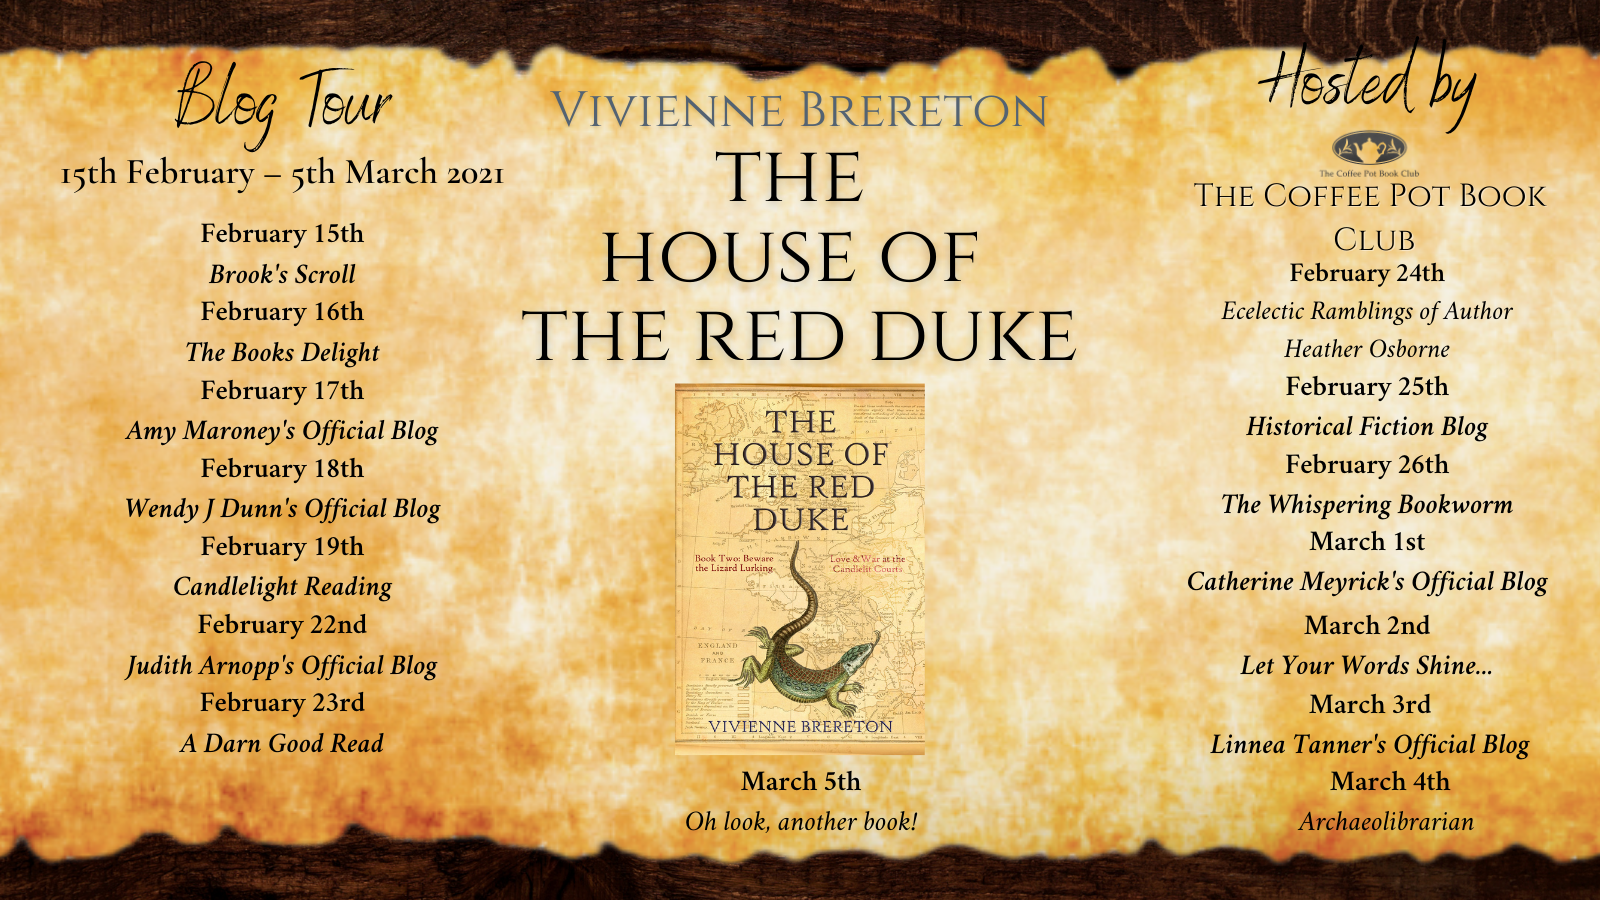 The House of the Red Duke Tour Schedulepng